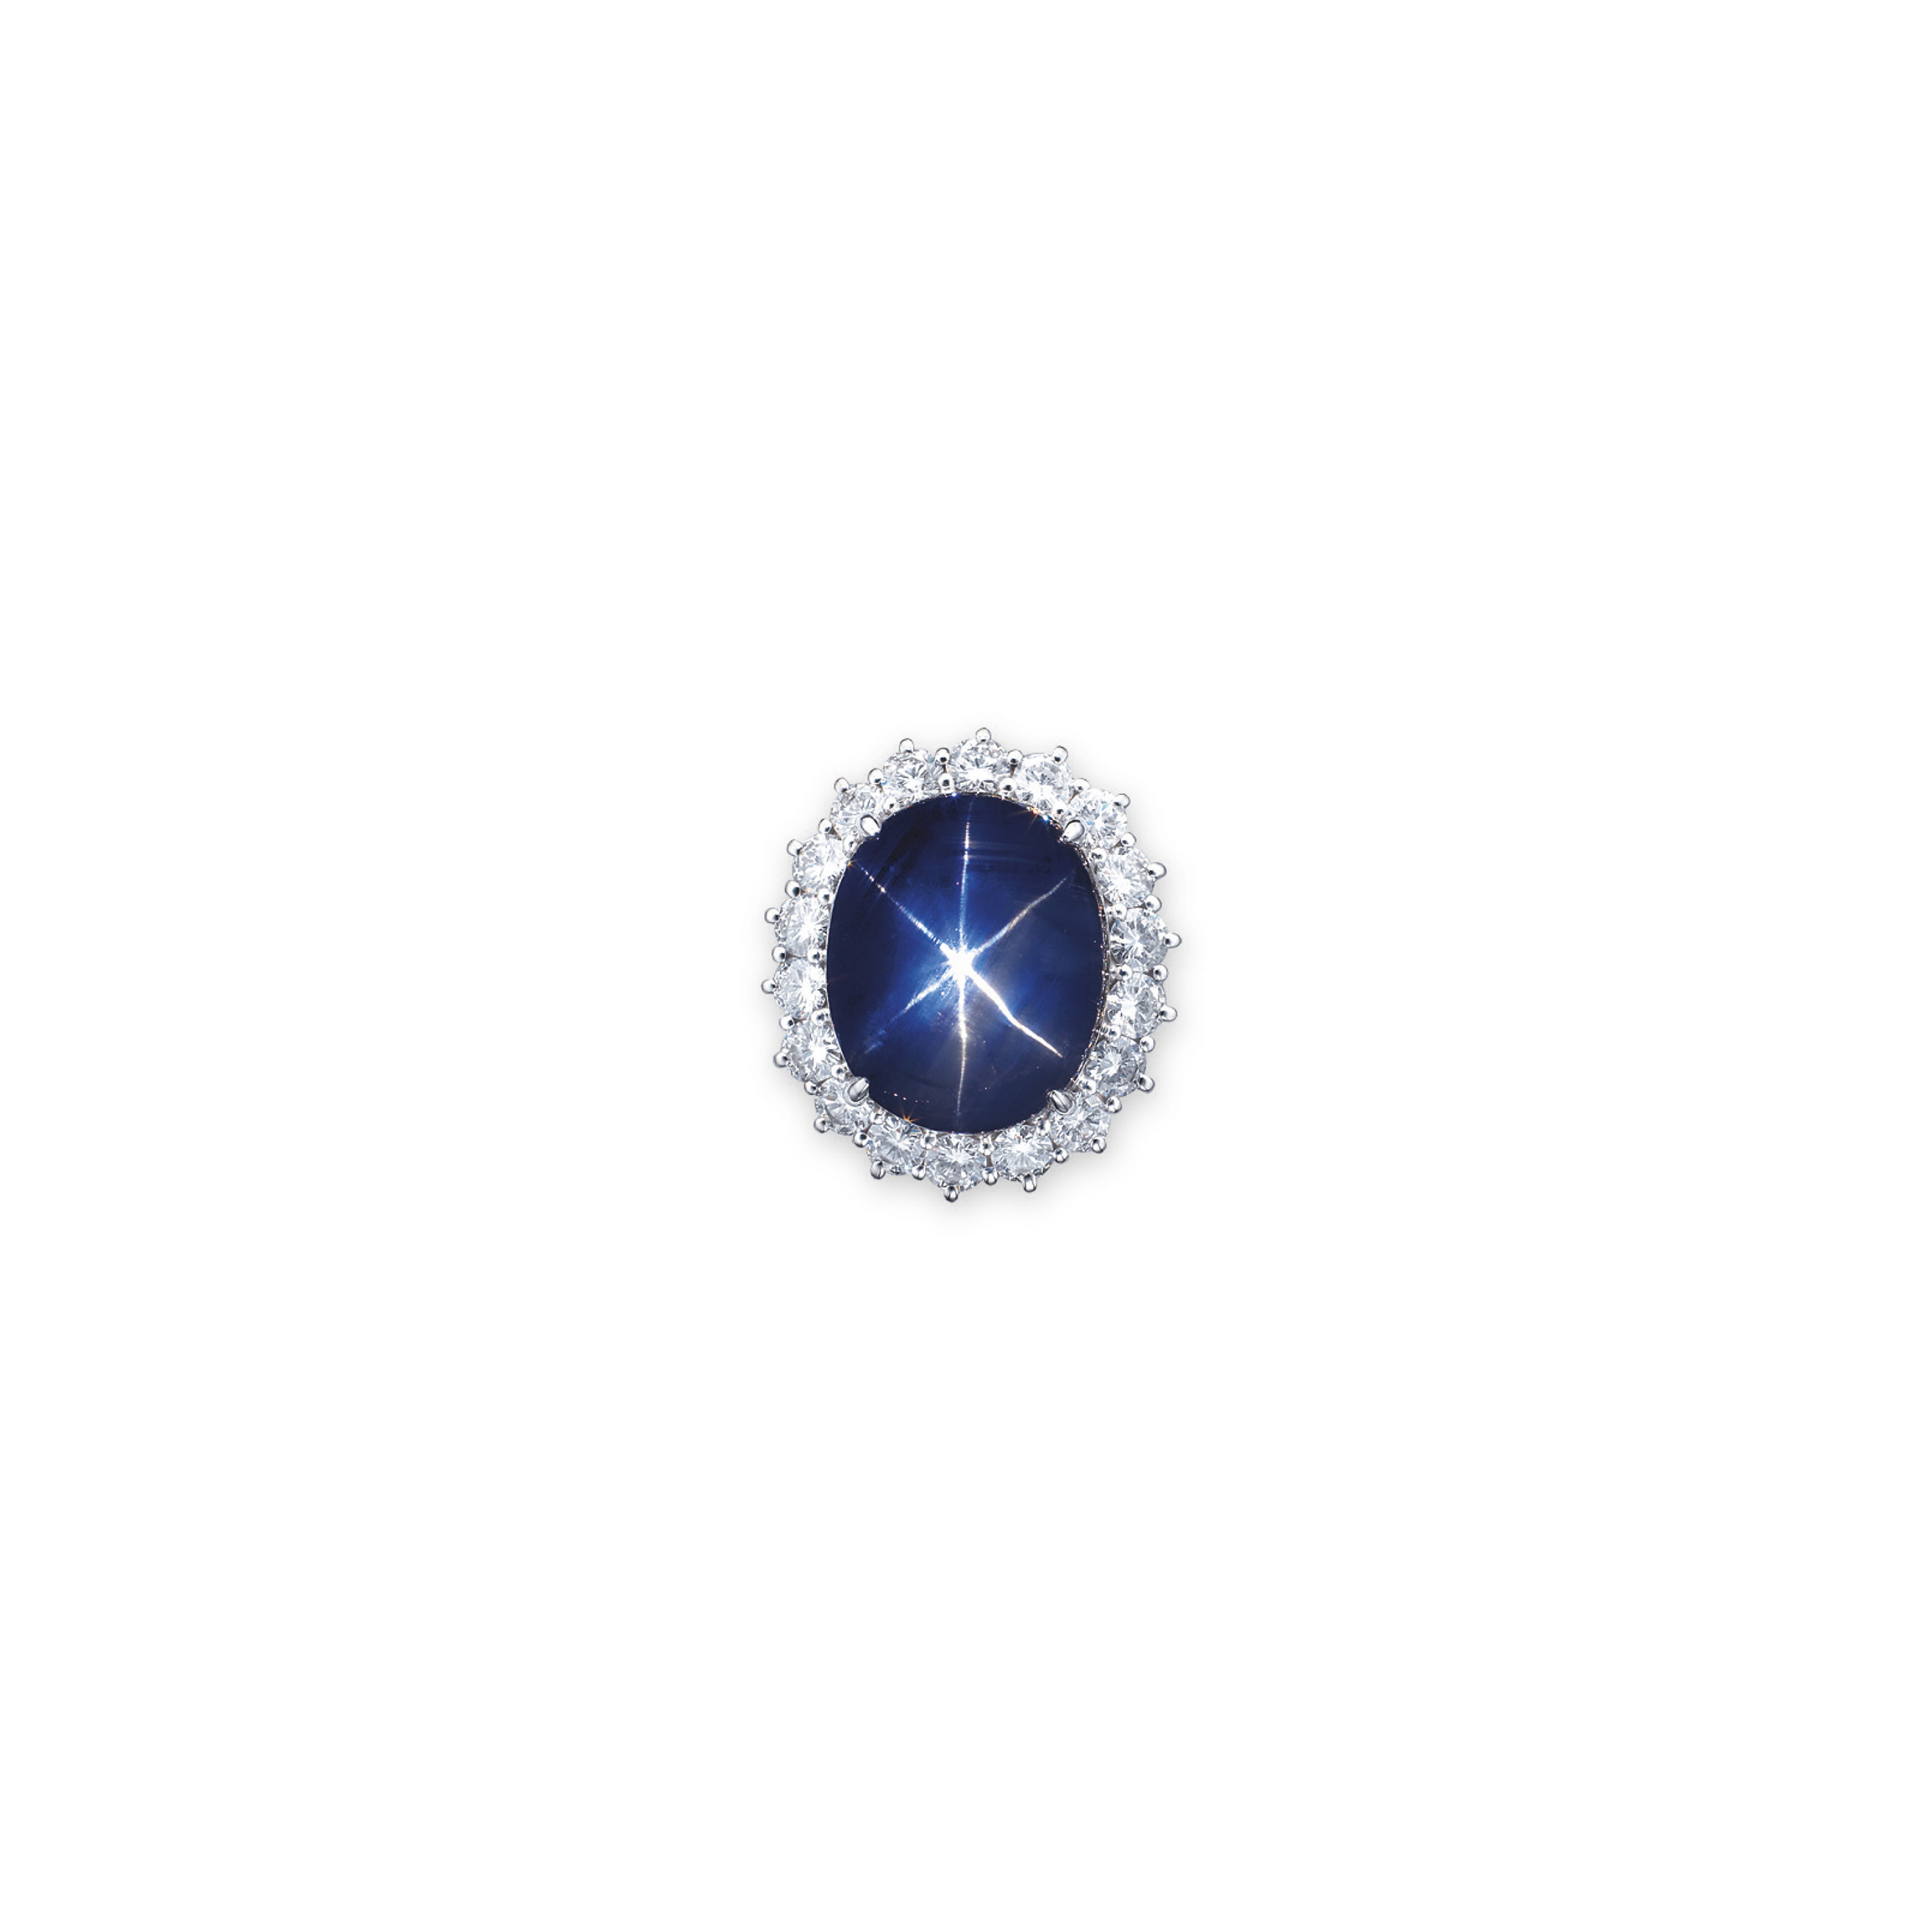 A STAR SAPPHIRE AND DIAMOND RI